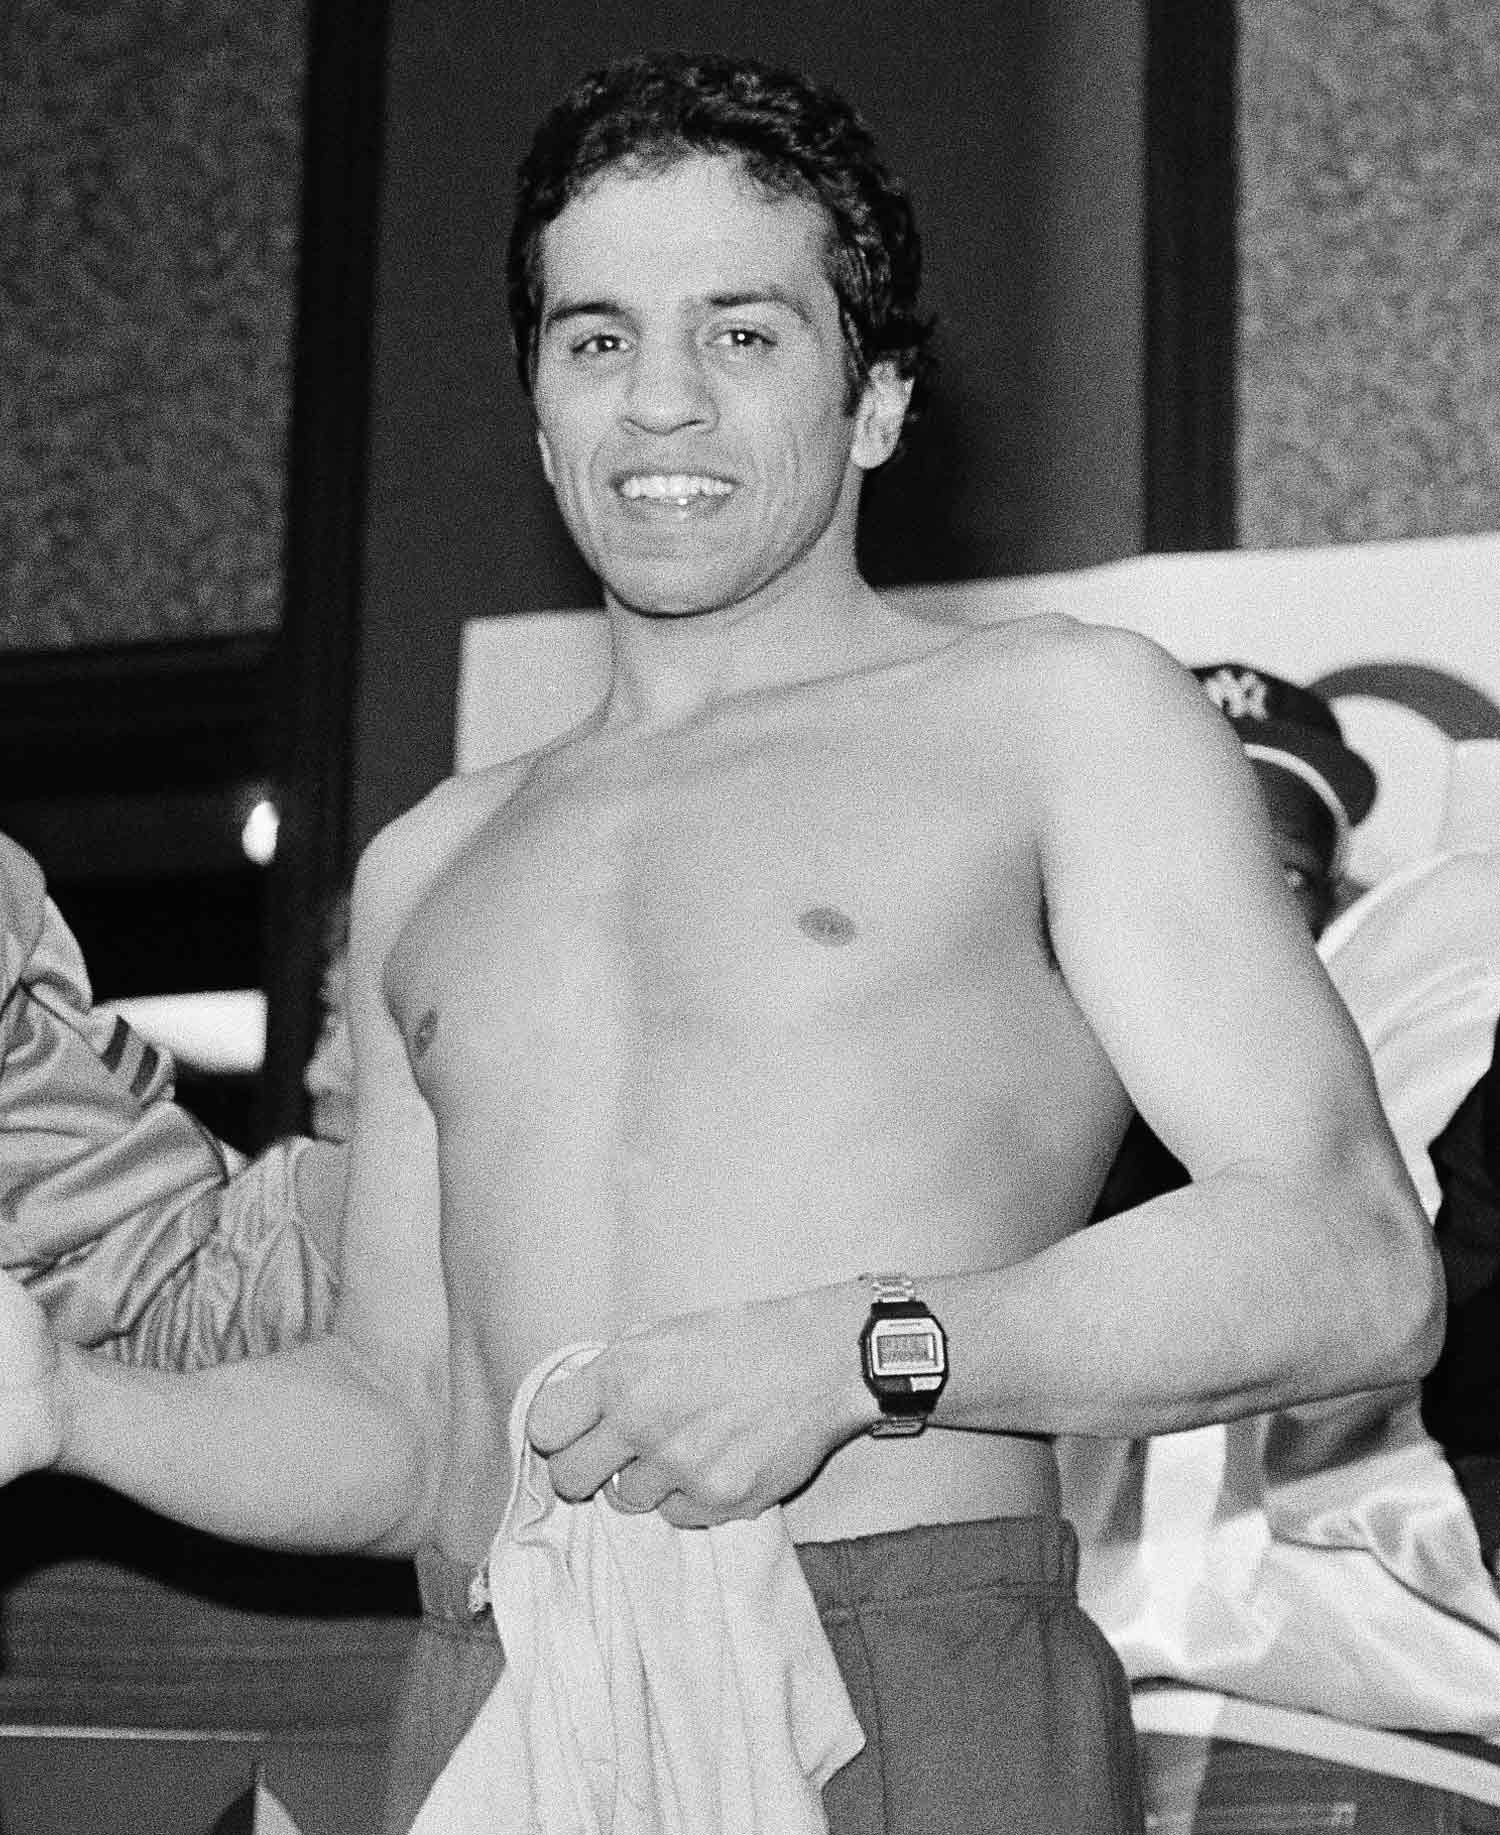 "<div class=""meta image-caption""><div class=""origin-logo origin-image ap""><span>AP</span></div><span class=""caption-text"">Bobby Chacon, an International Boxing Hall of Famer and featherweight champion, died on Sept. 7, 2016. He was 64. (AP Photo/Walt Zeboski)</span></div>"